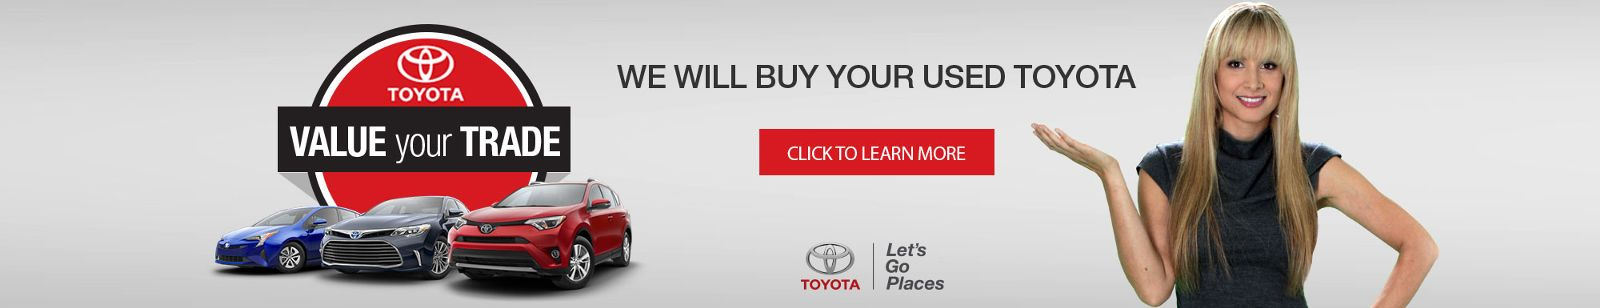 North Hollywood Toyota Service >> North Hollywood Toyota New And Certified Used Toyota Car ...